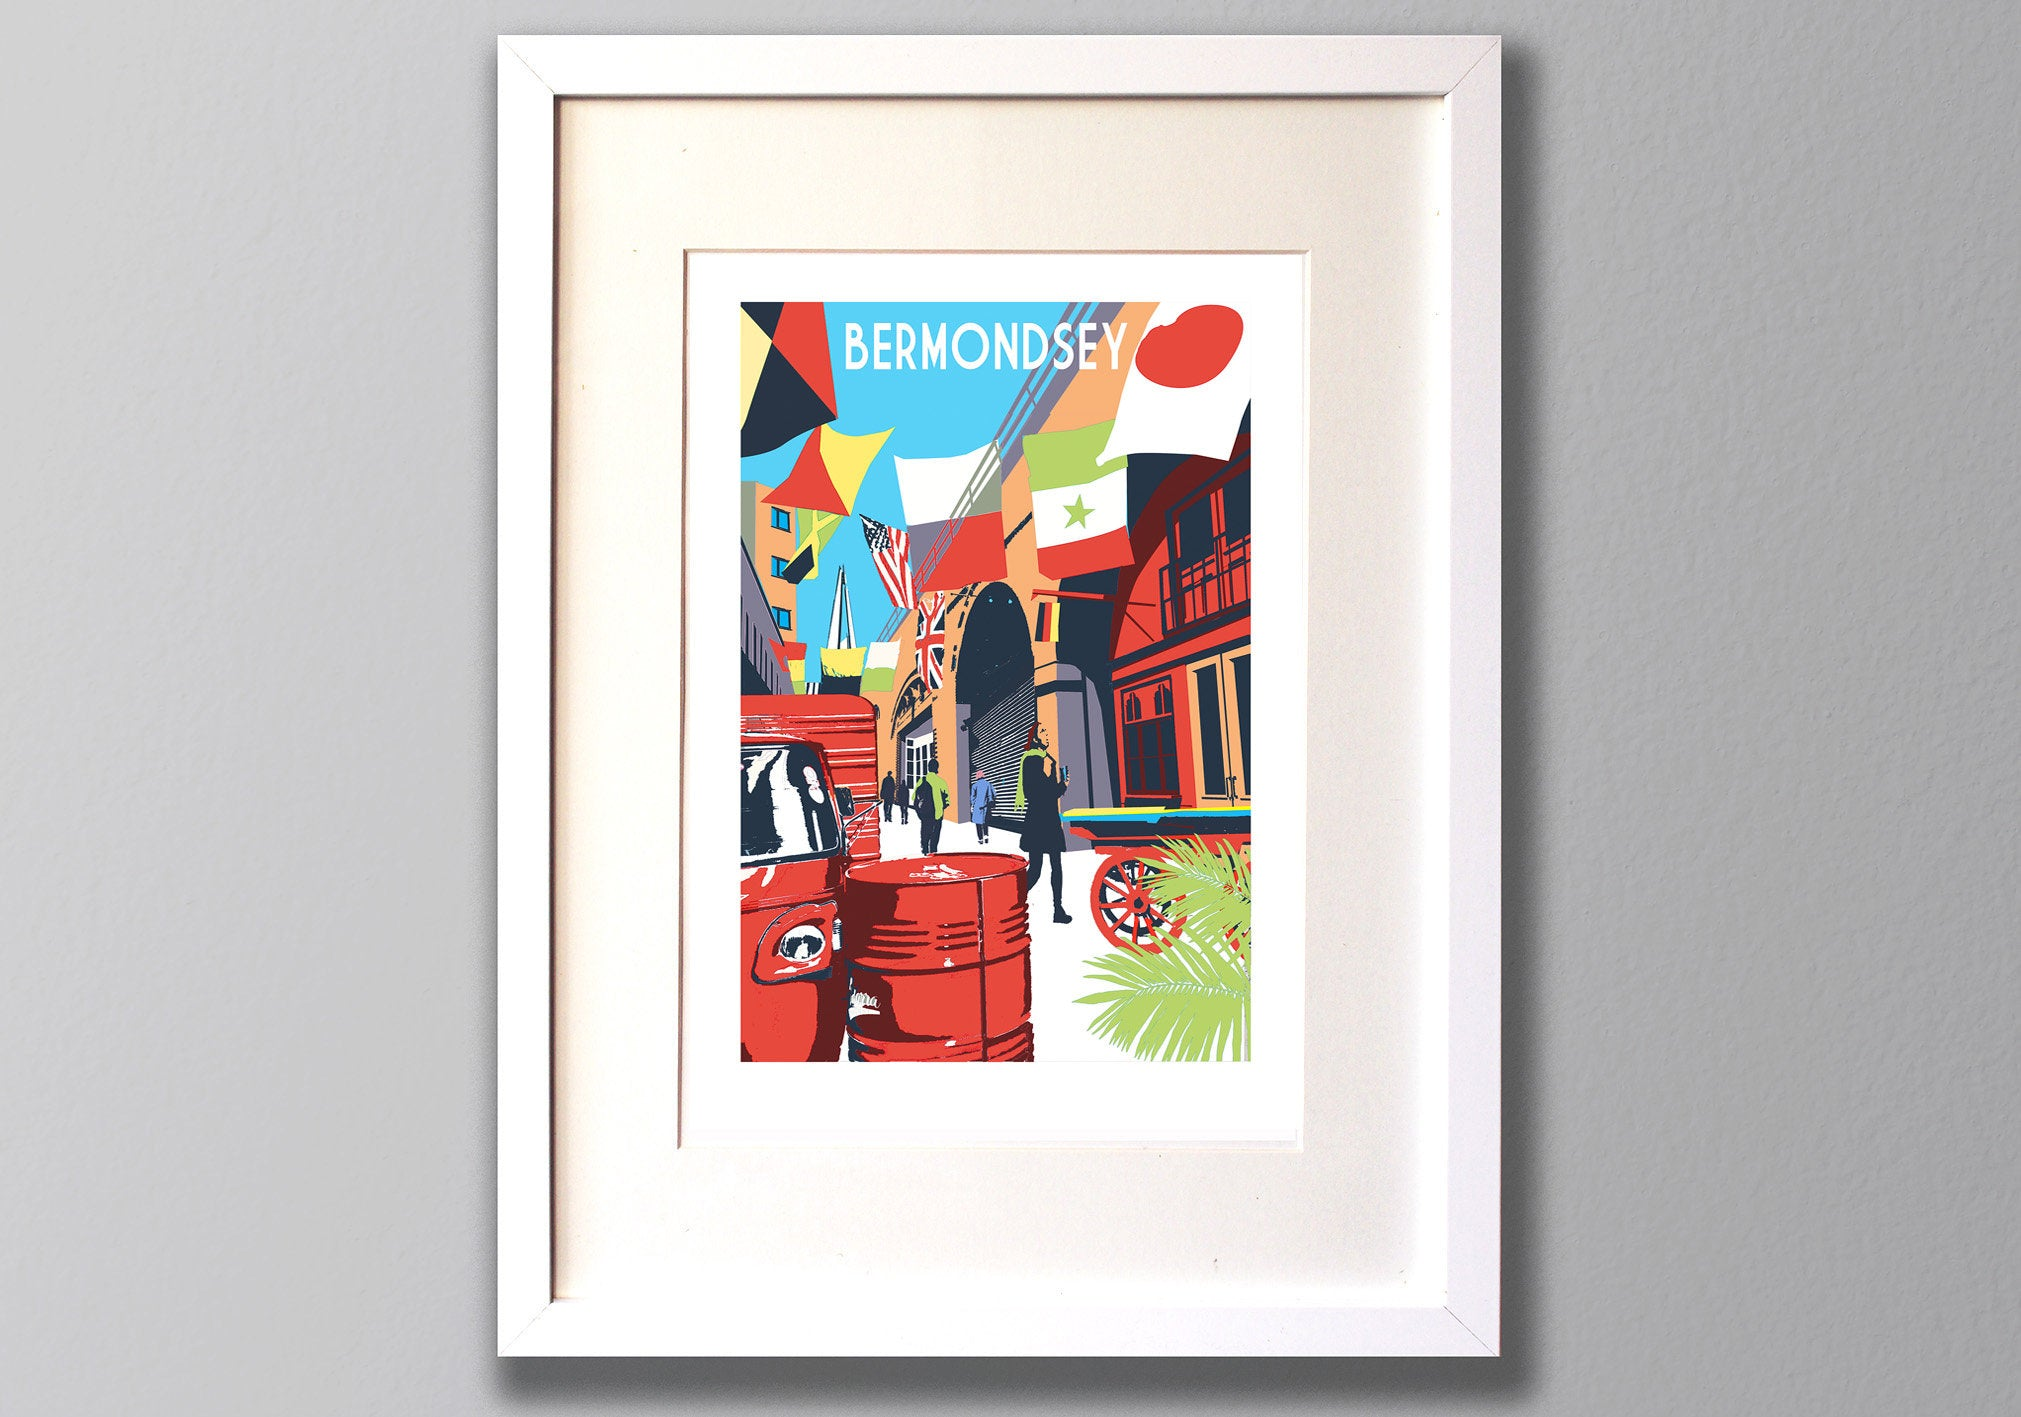 Bermondsey Screen Print - A3 Limited Edition Art - Red Faces Prints